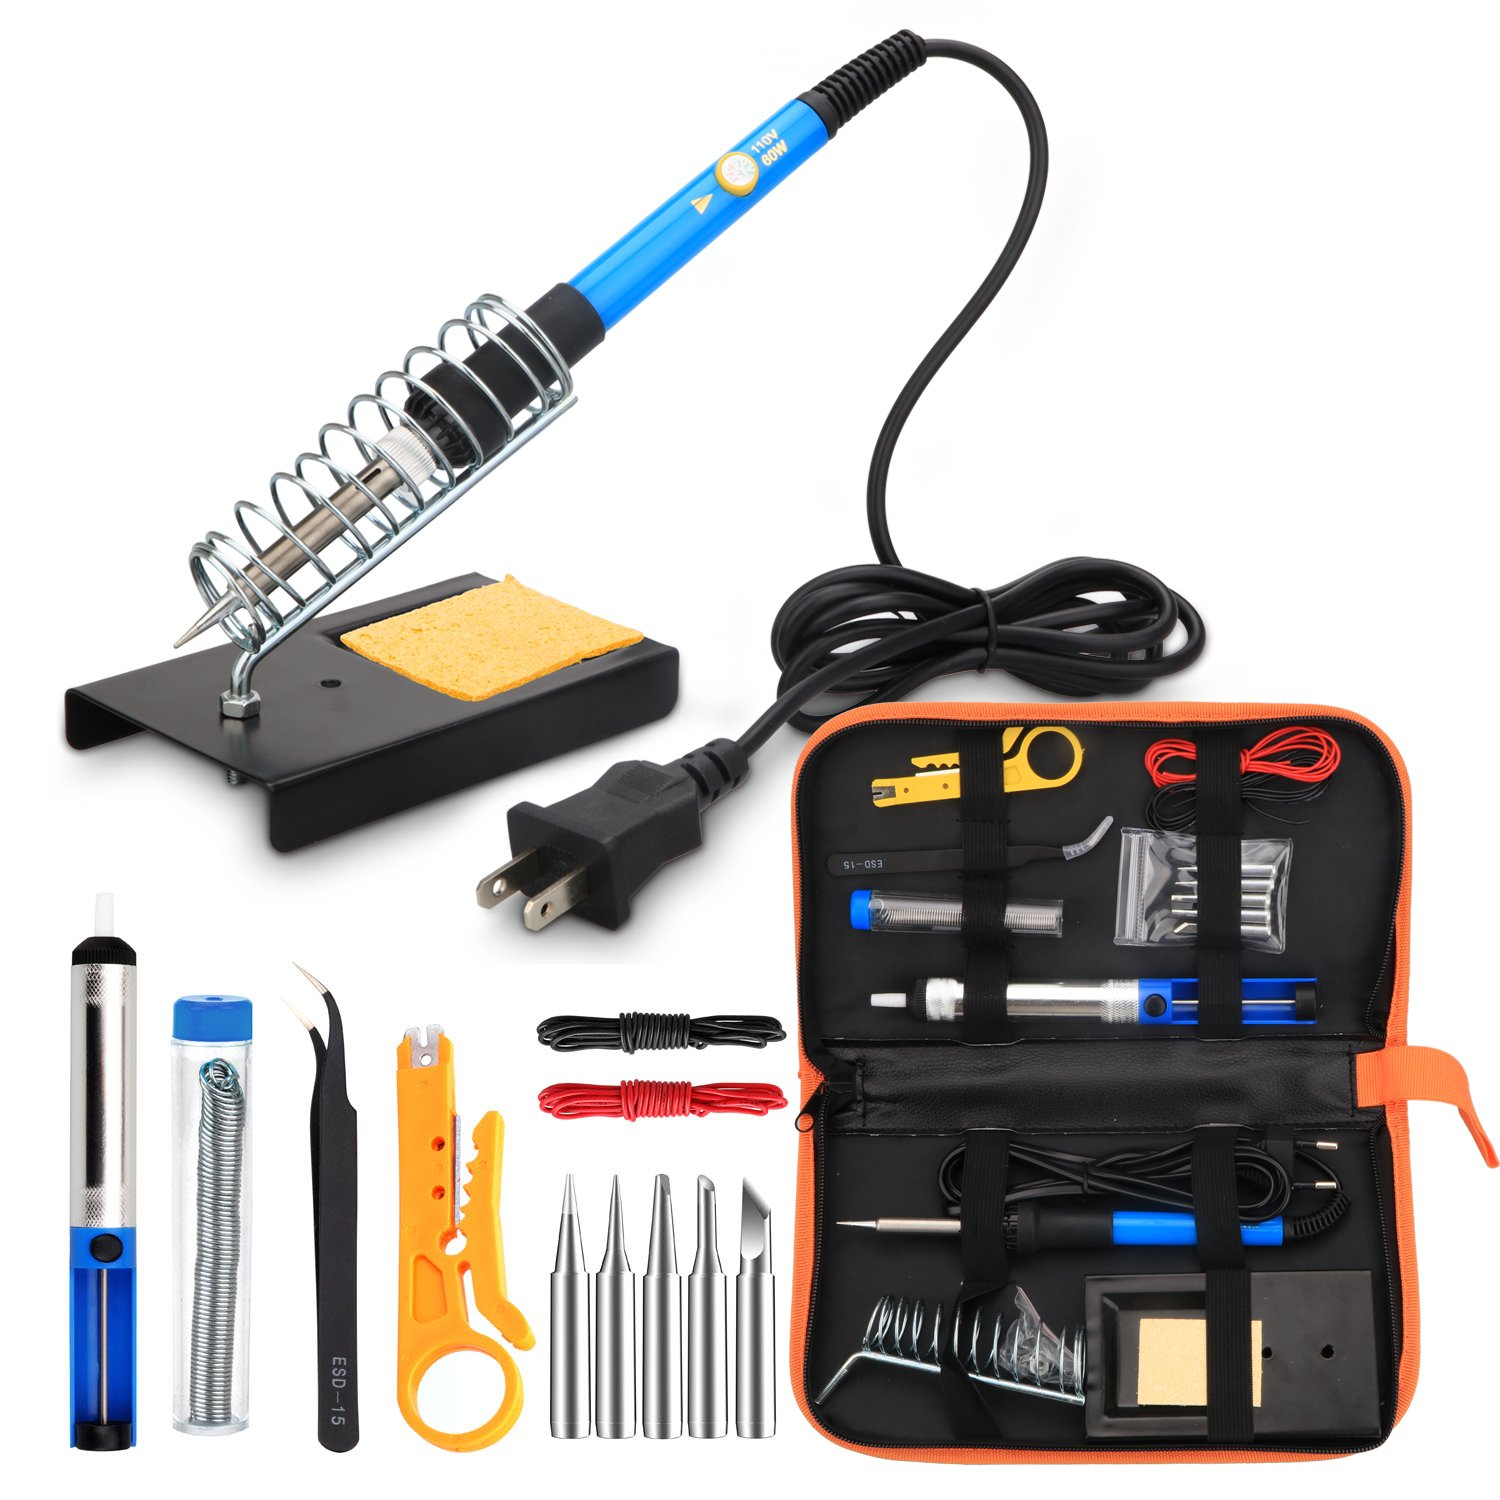 Soldering Iron Kit 60W Adjustable Temperature Welding Soldering Iron